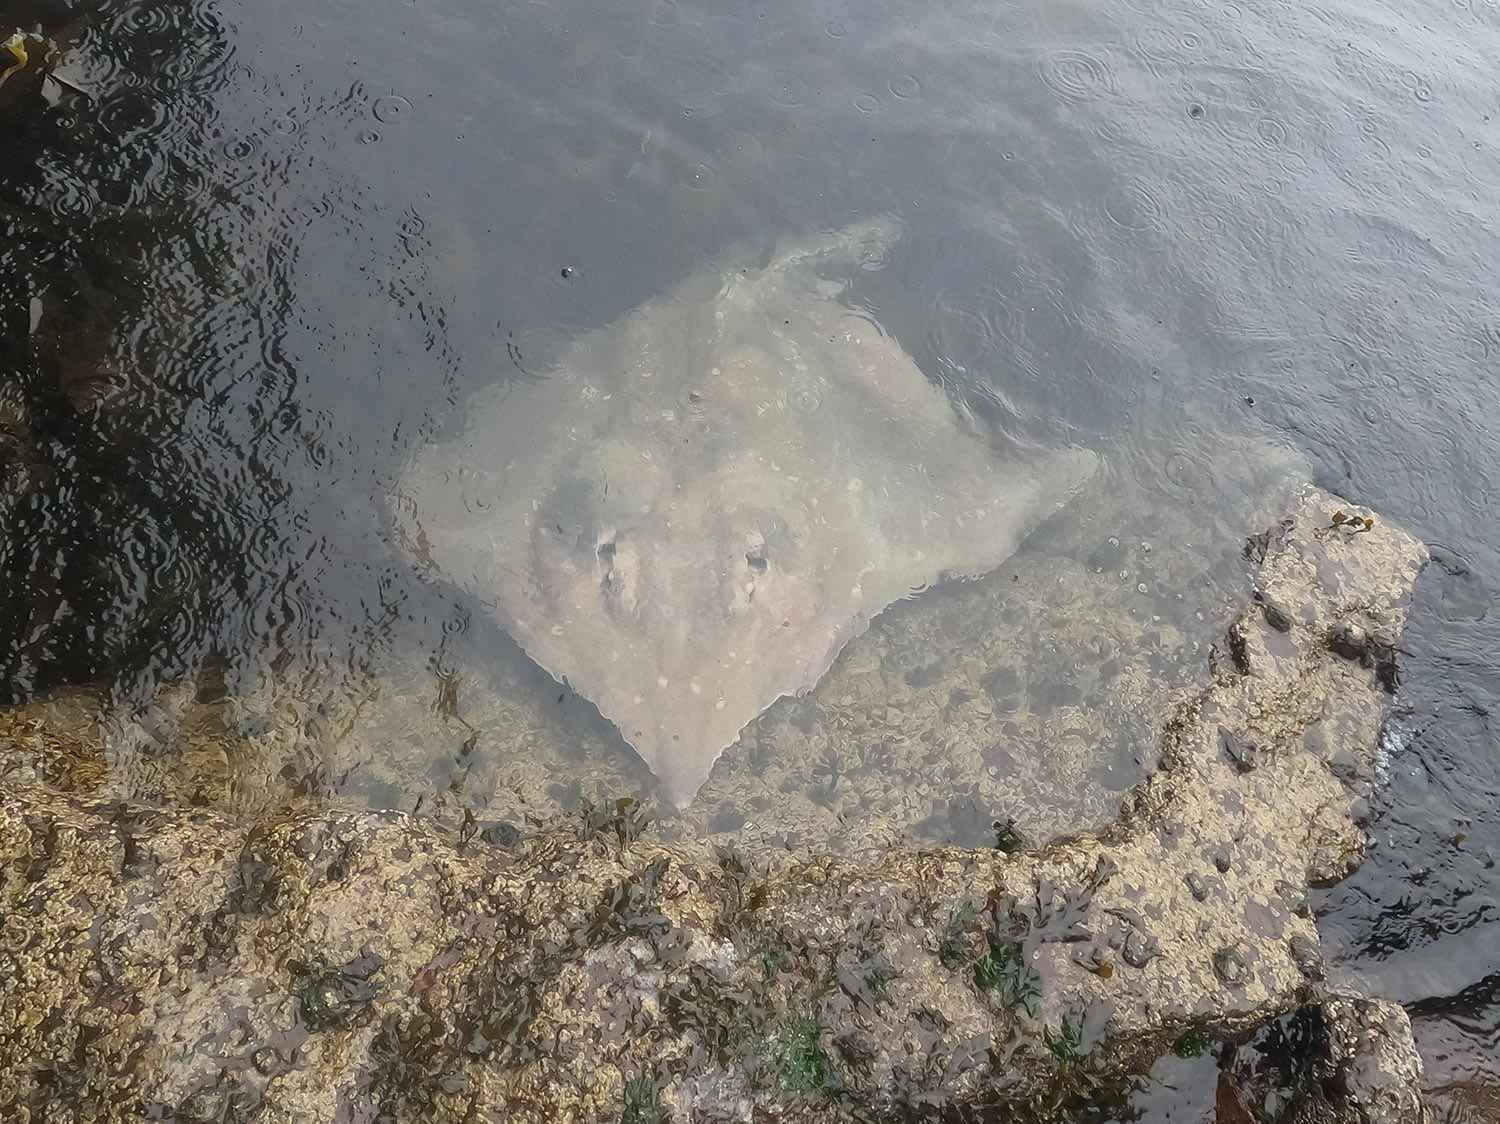 a common skate recovering in the shallows before swimming back to the deeps